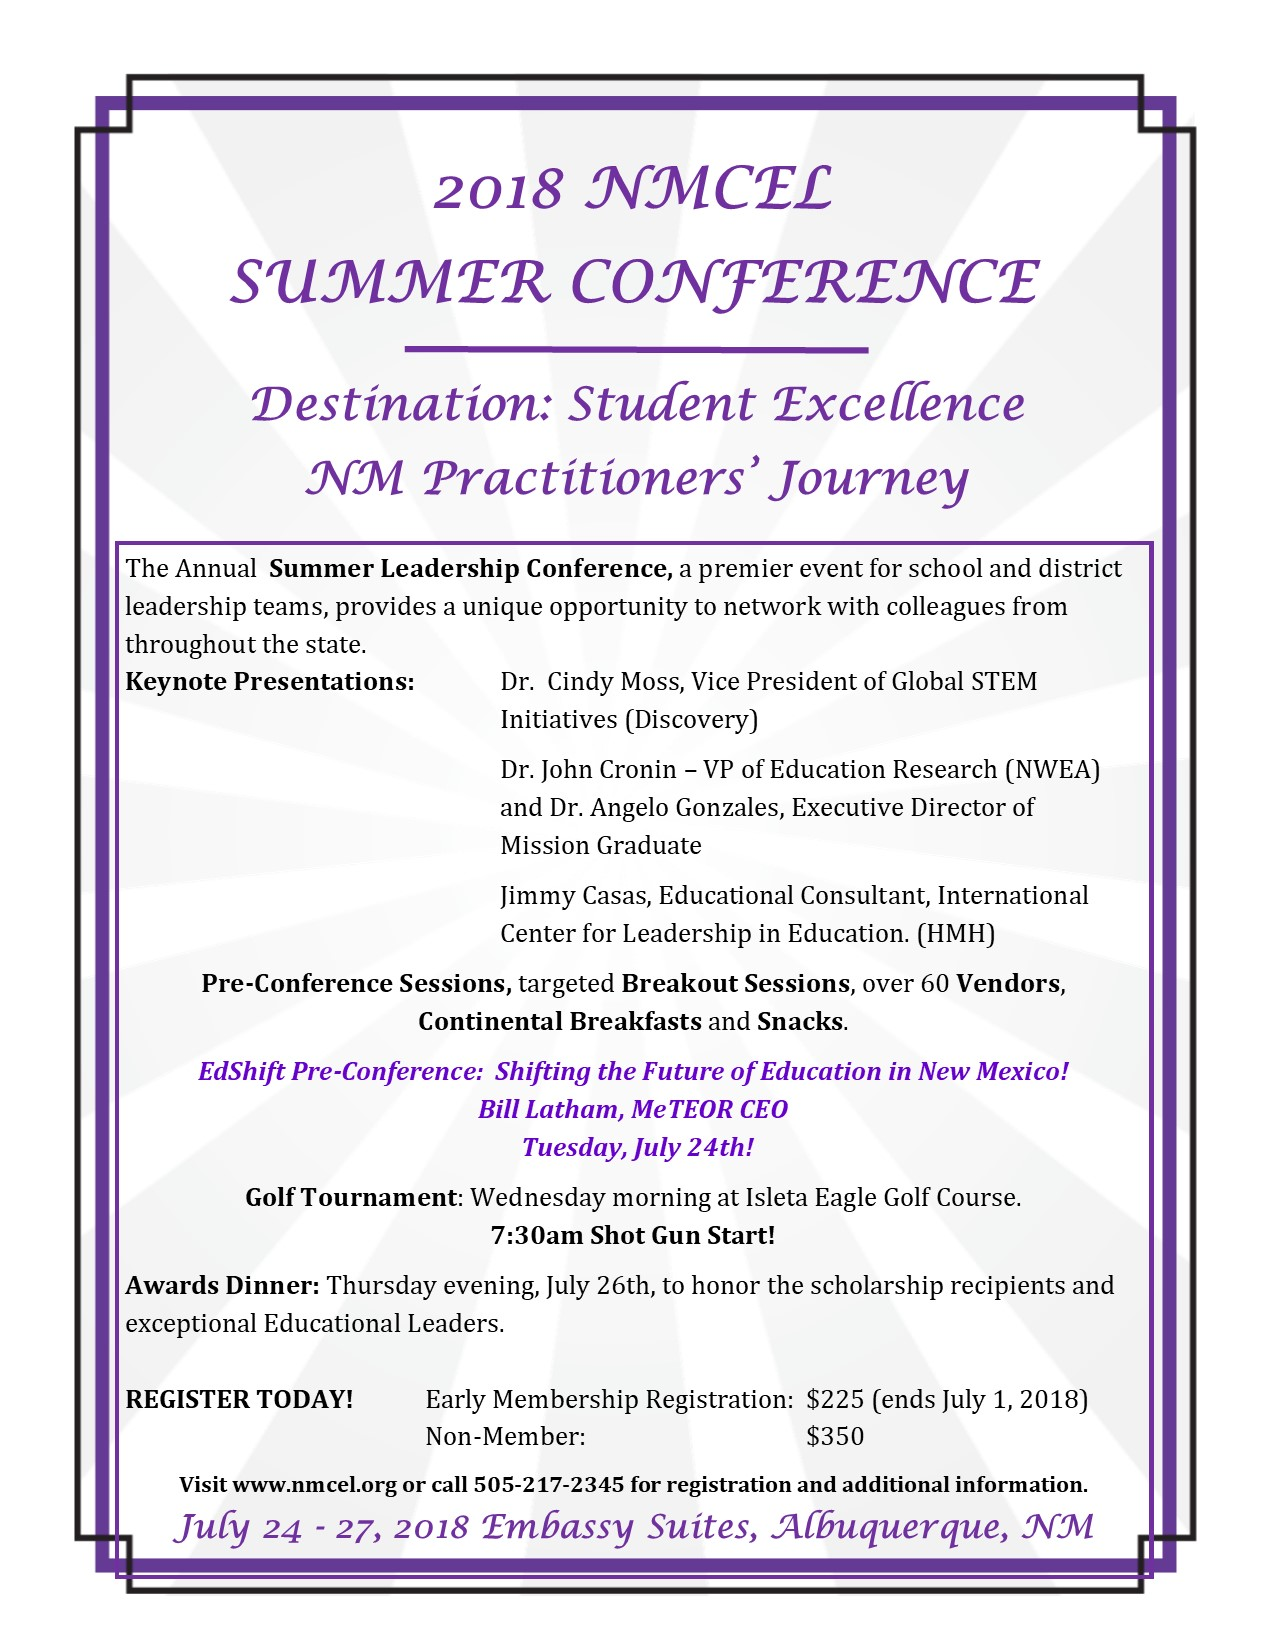 NMCEL 2018 Annual Summer Conference